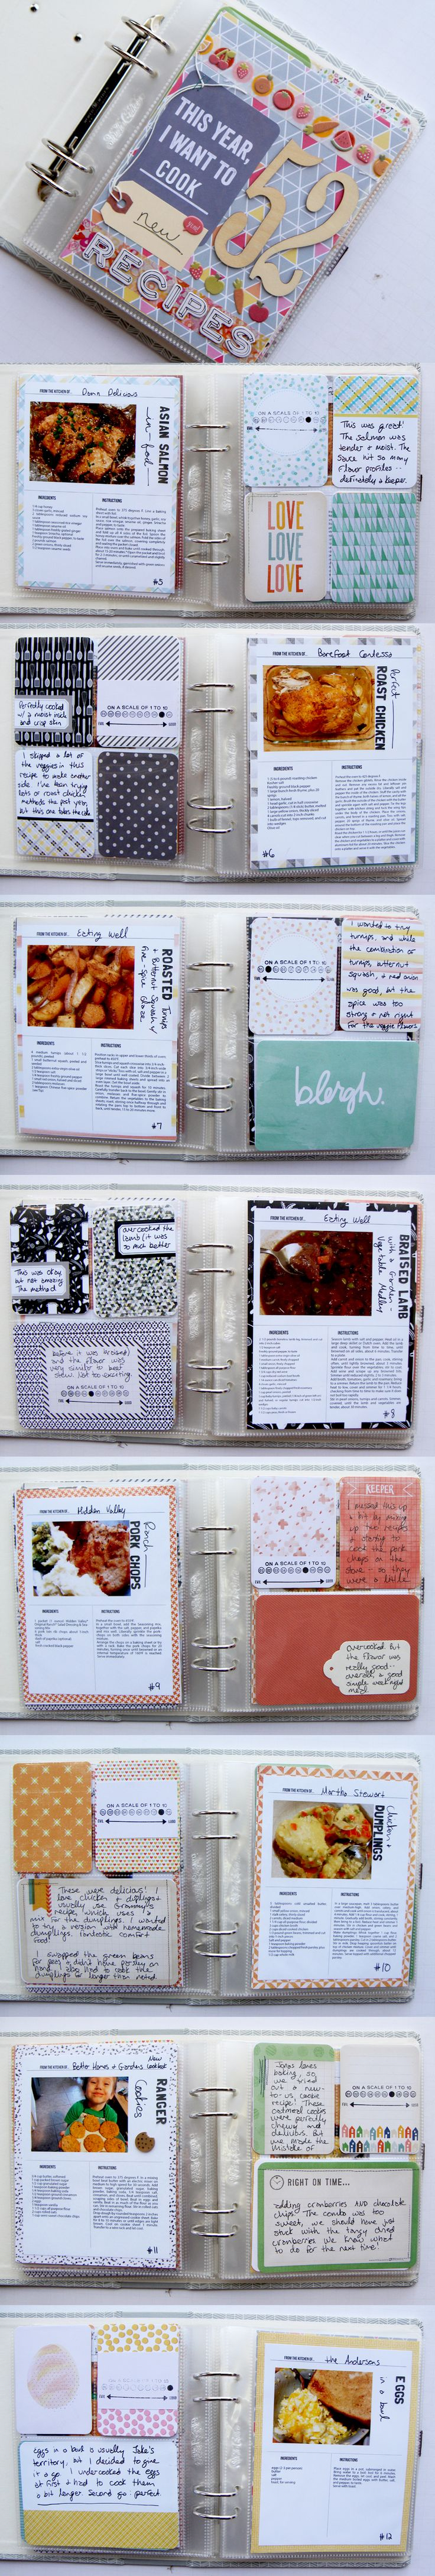 33 creative scrapbook ideas every crafter should know diy projects - 52 Recipes Minibook Project From The Nerd Nest